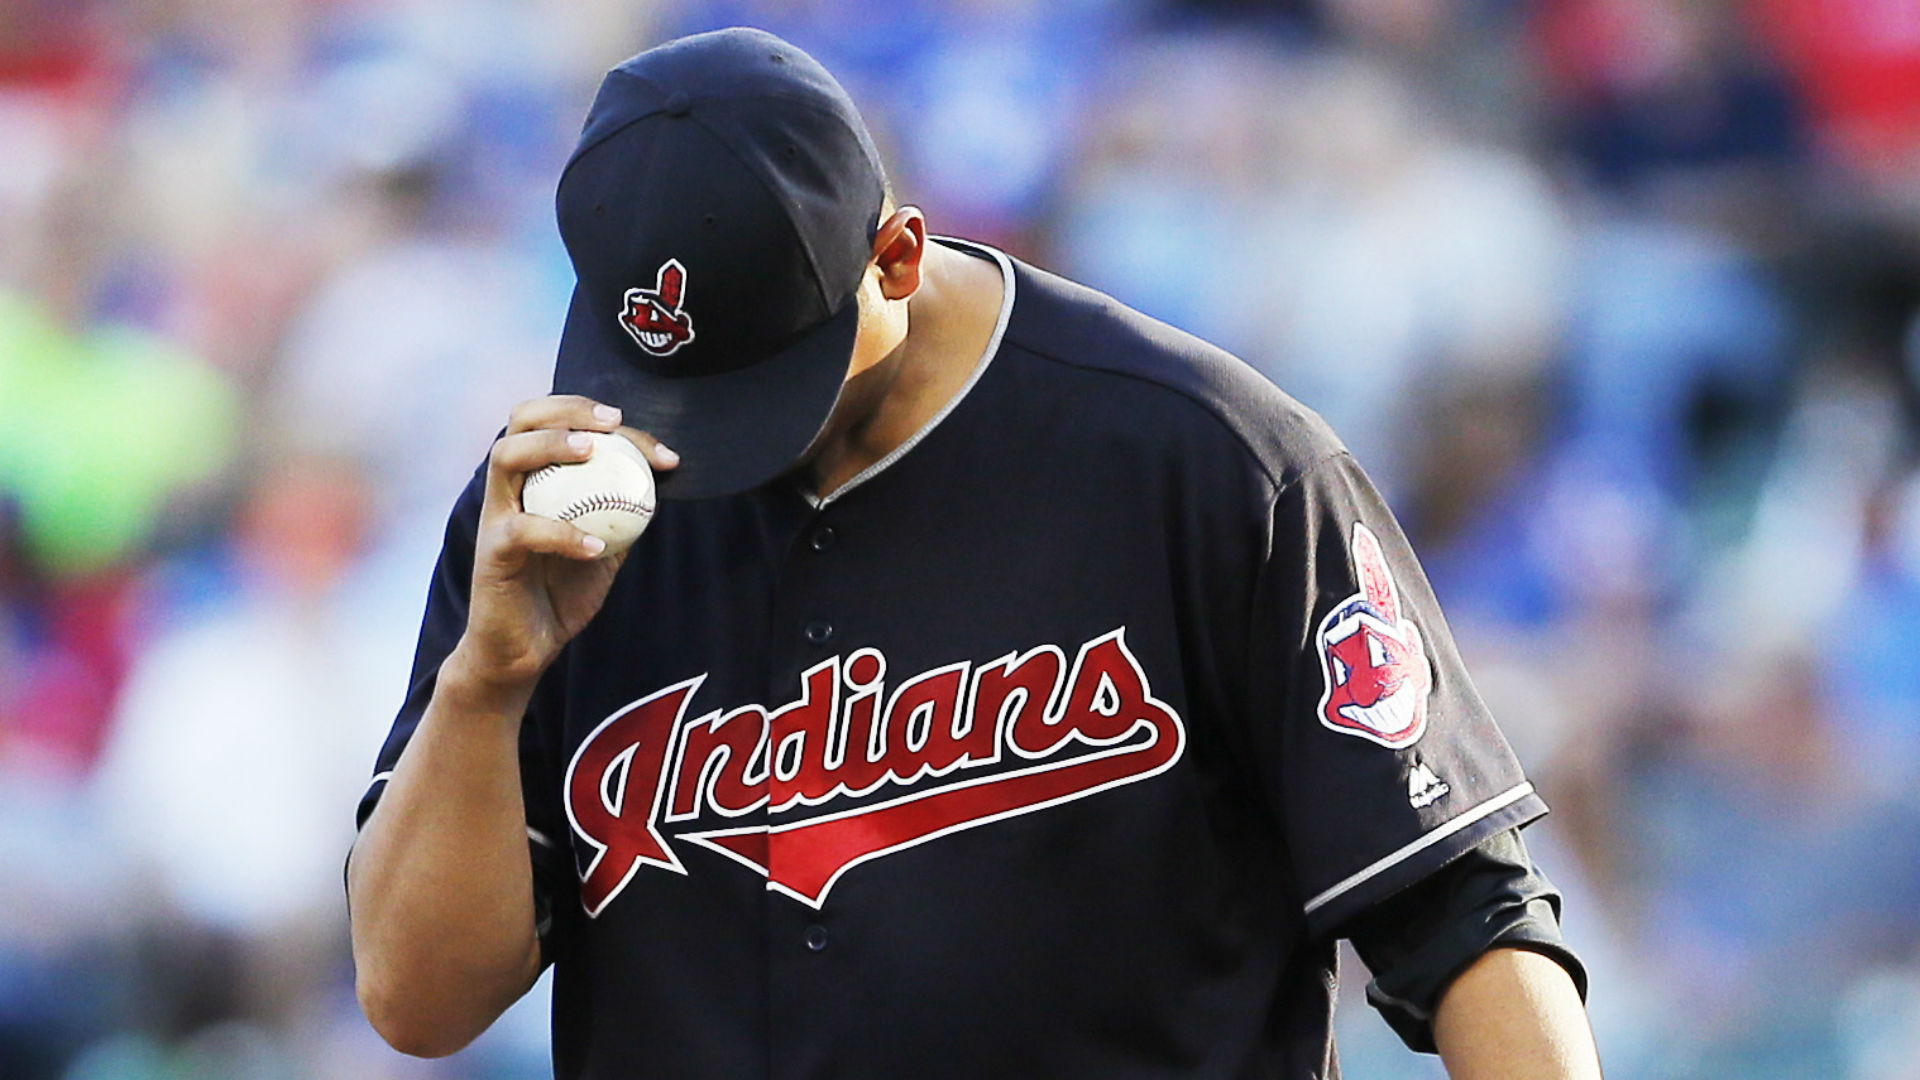 Carrasco landed on the injured list in June after being diagnosed with chronic myeloid leukemia.